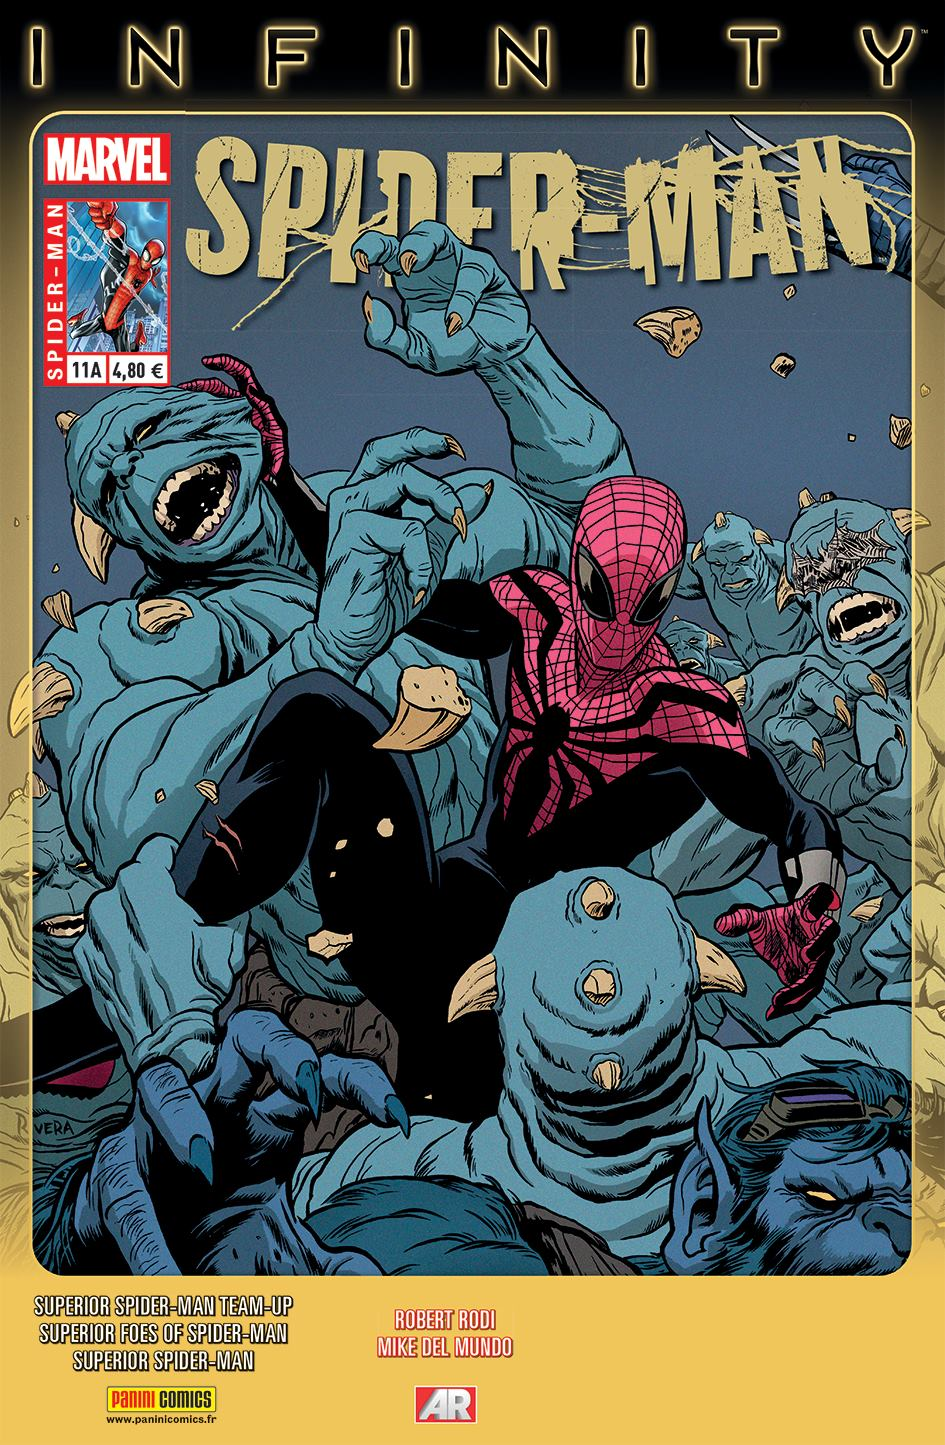 SPIDER-MAN 11 (Couv A)